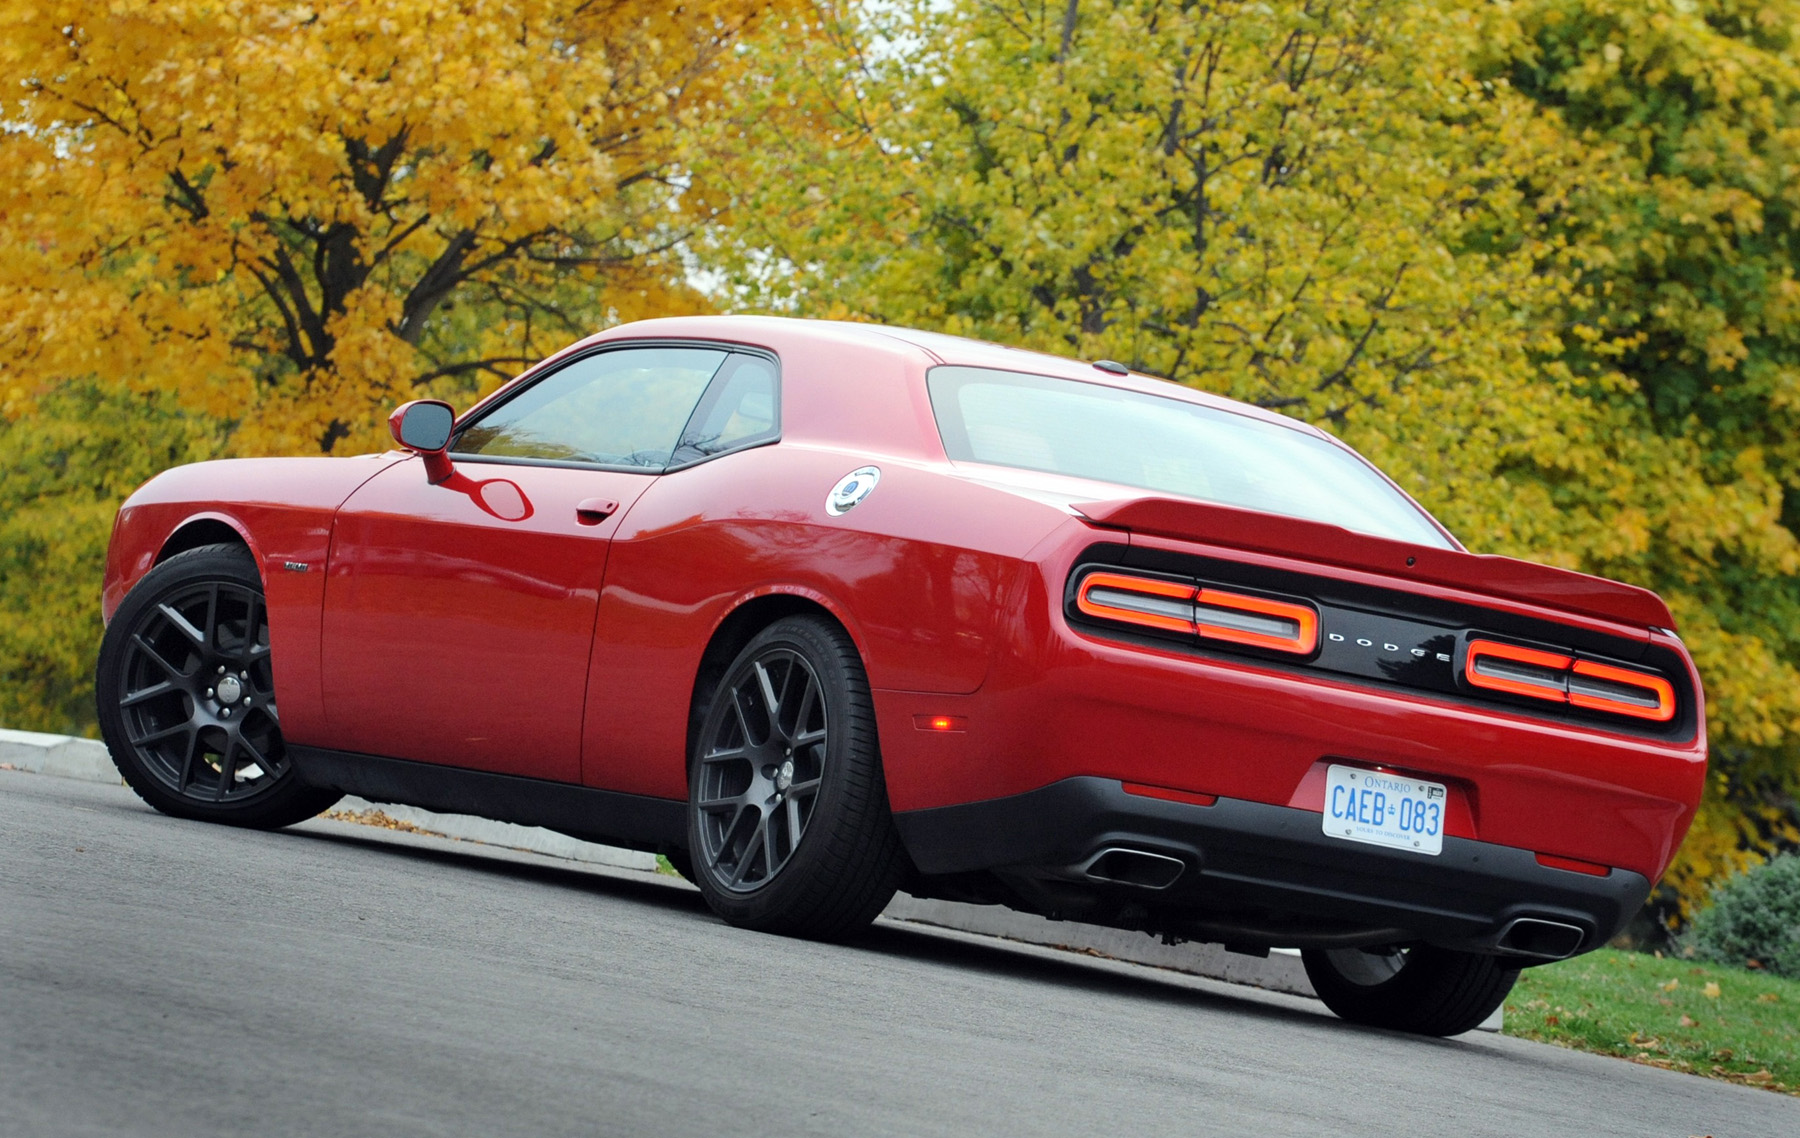 hight resolution of the dodge challenger r t catches your eye coming or going the styling lines paying tribute to heritage muscle car cues from the past